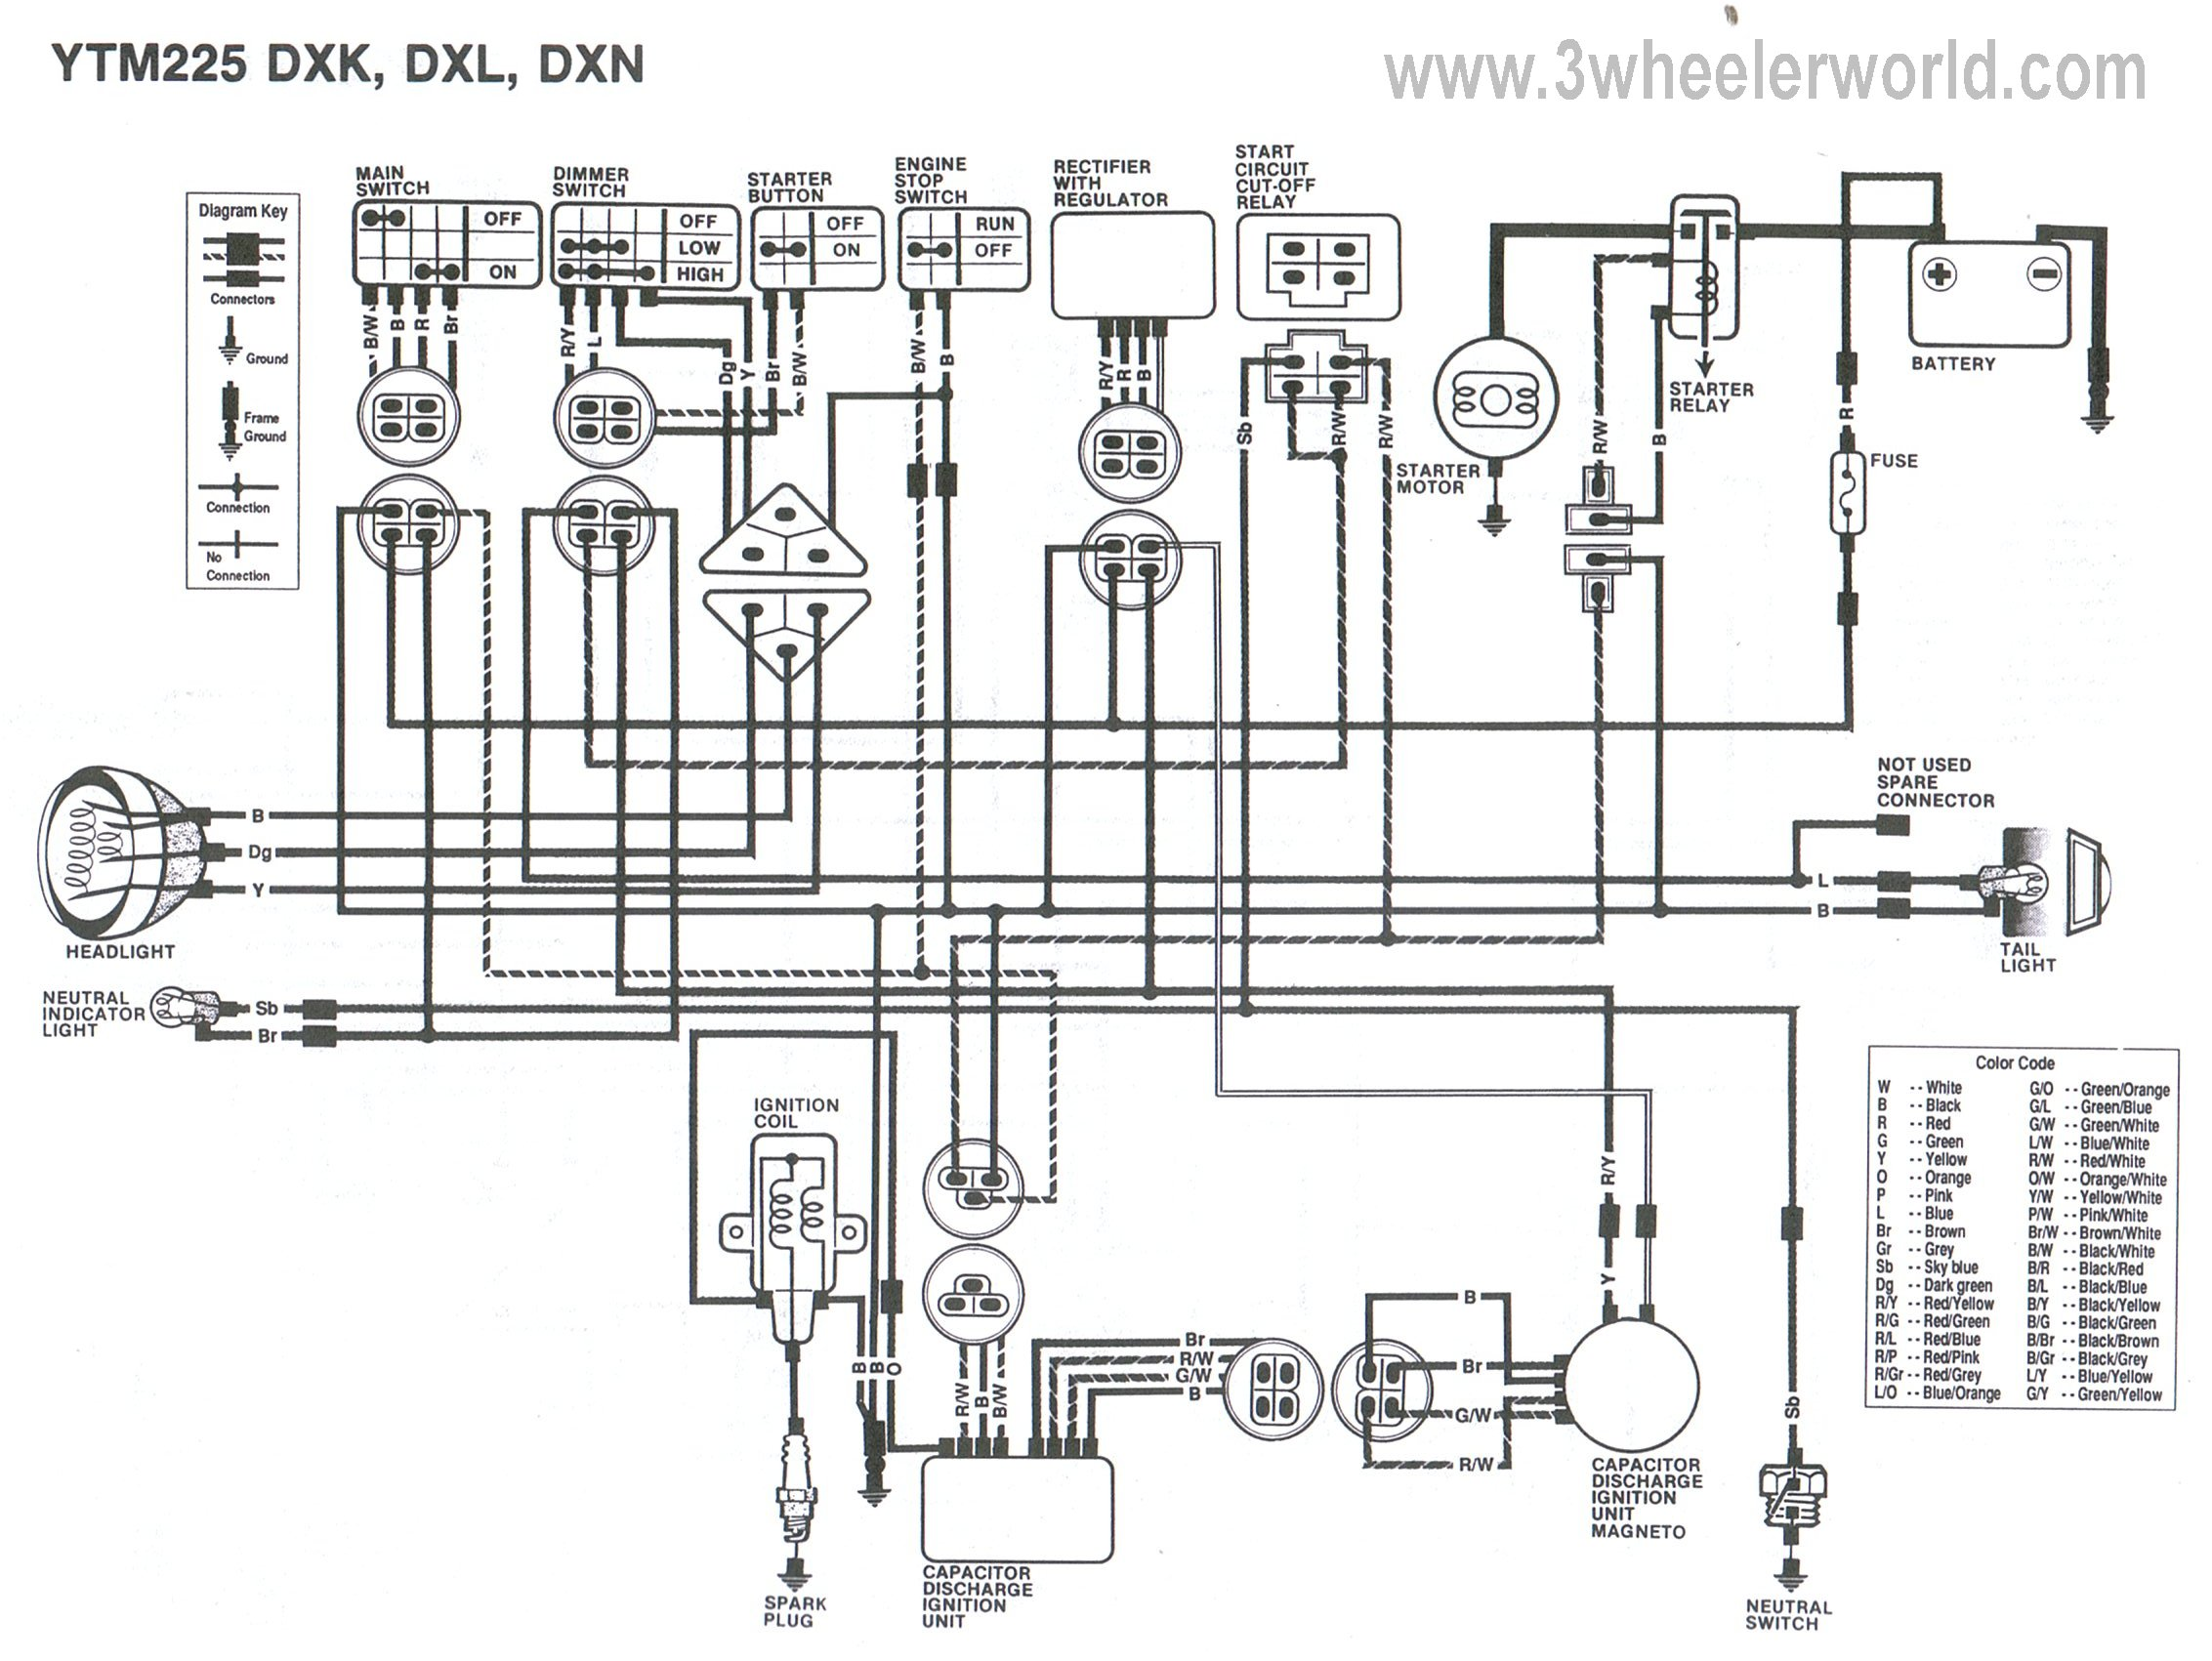 YTM225DXKDXLDXN 3 wheeler world tech help yamaha wiring diagrams yamaha moto 4 225 wiring diagram at n-0.co